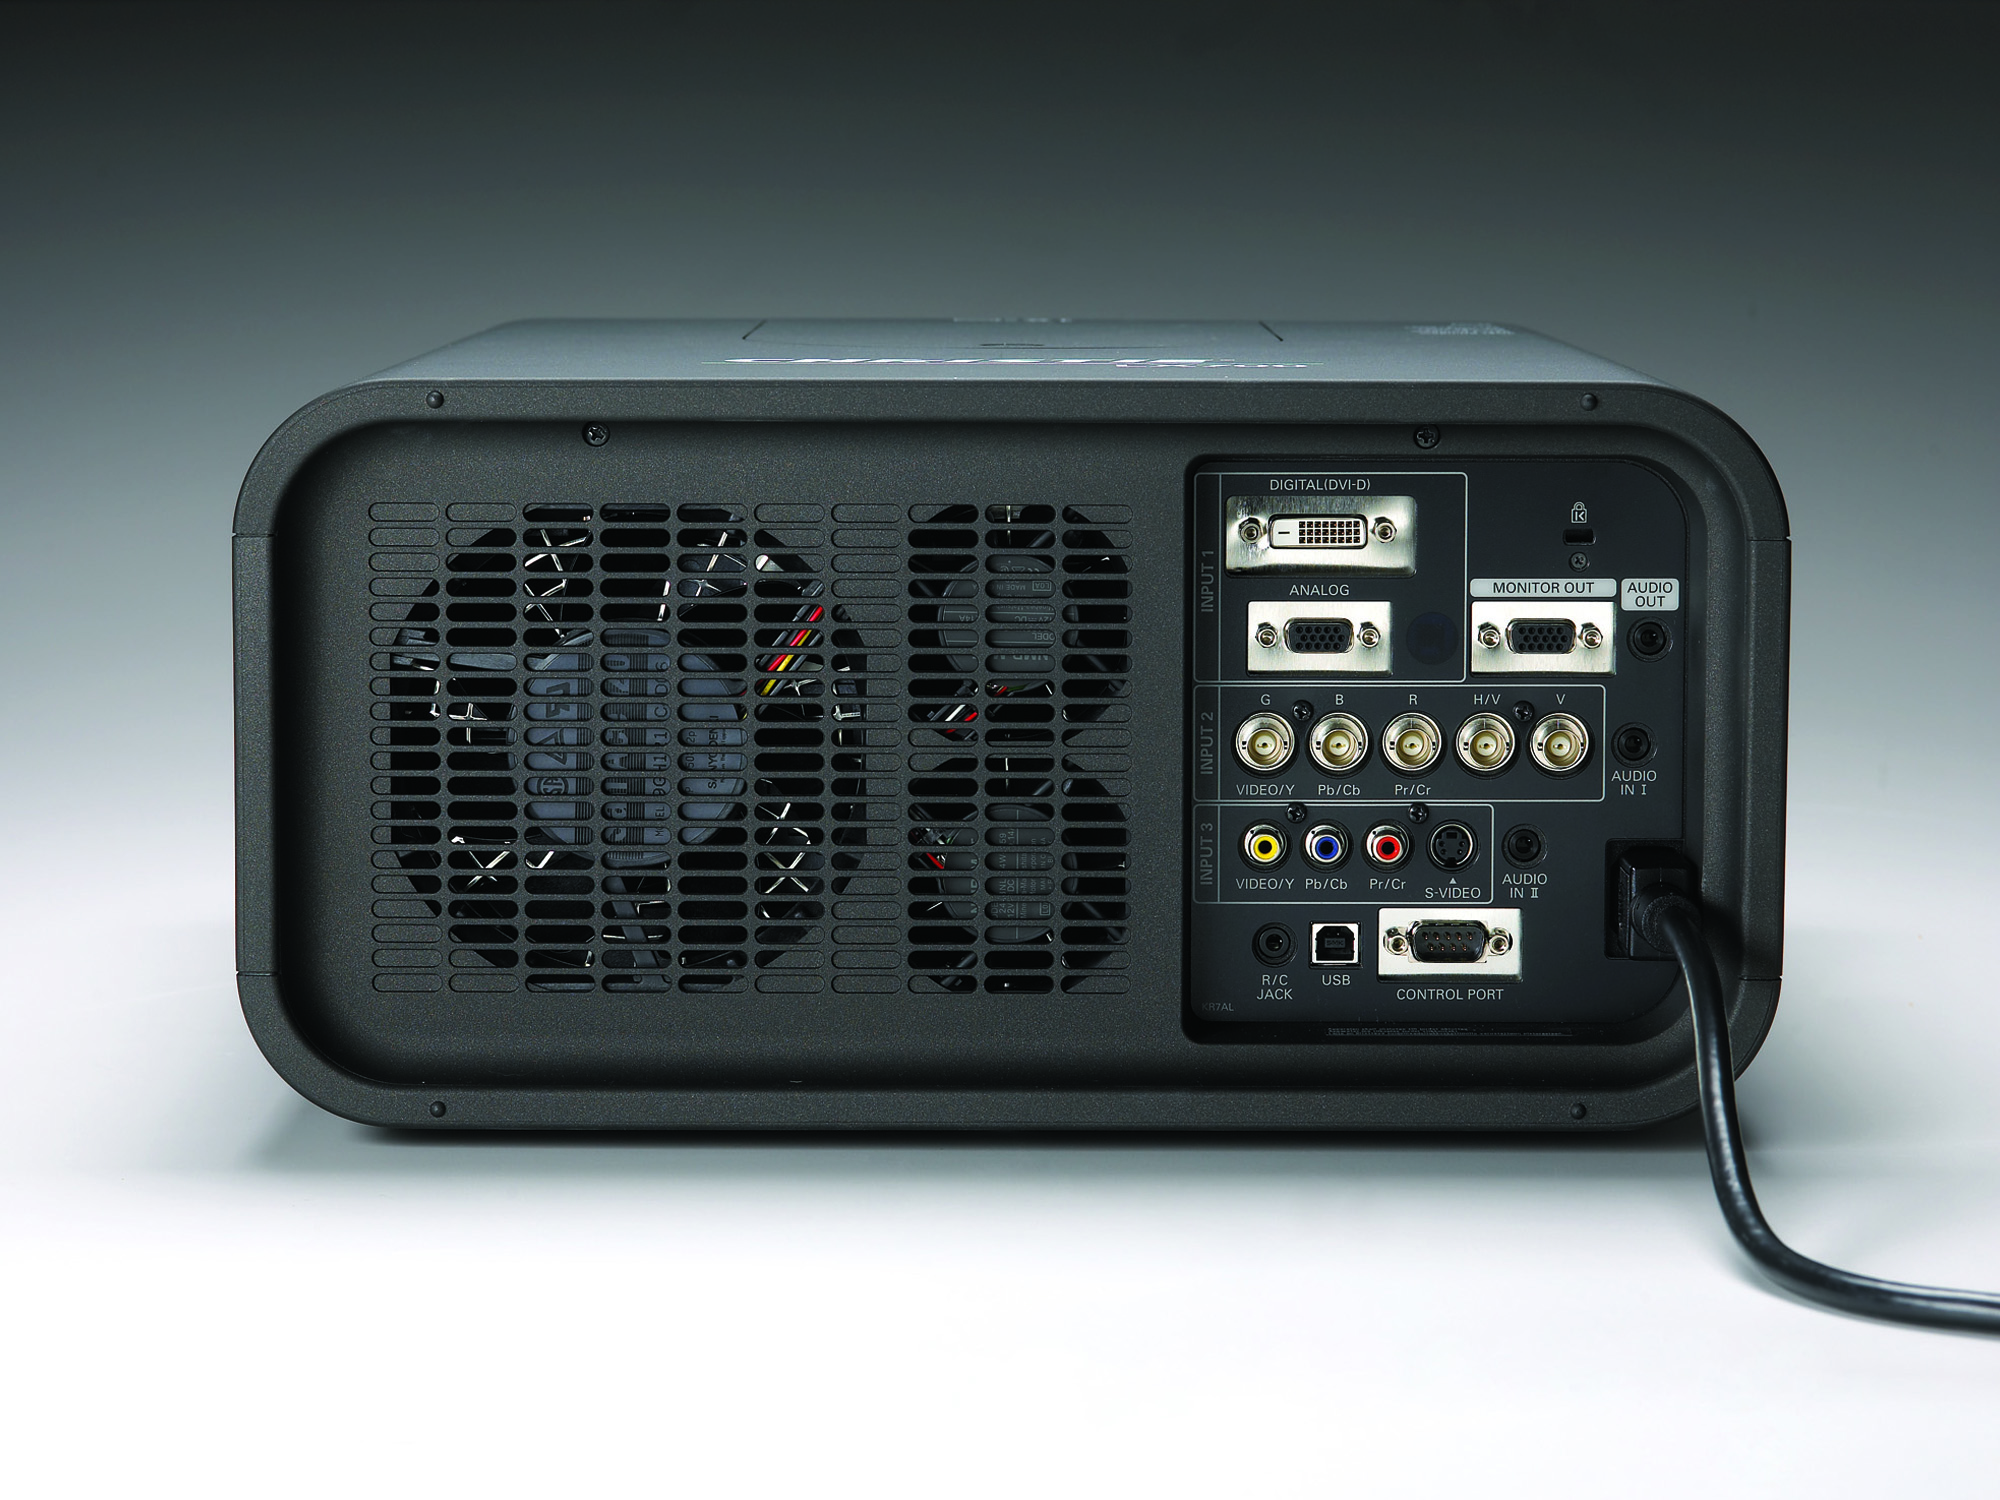 /globalassets/.catalog/products/images/christie-lx700/gallery/christie-lx700-lcd-digital-projector-lx700_120.jpg